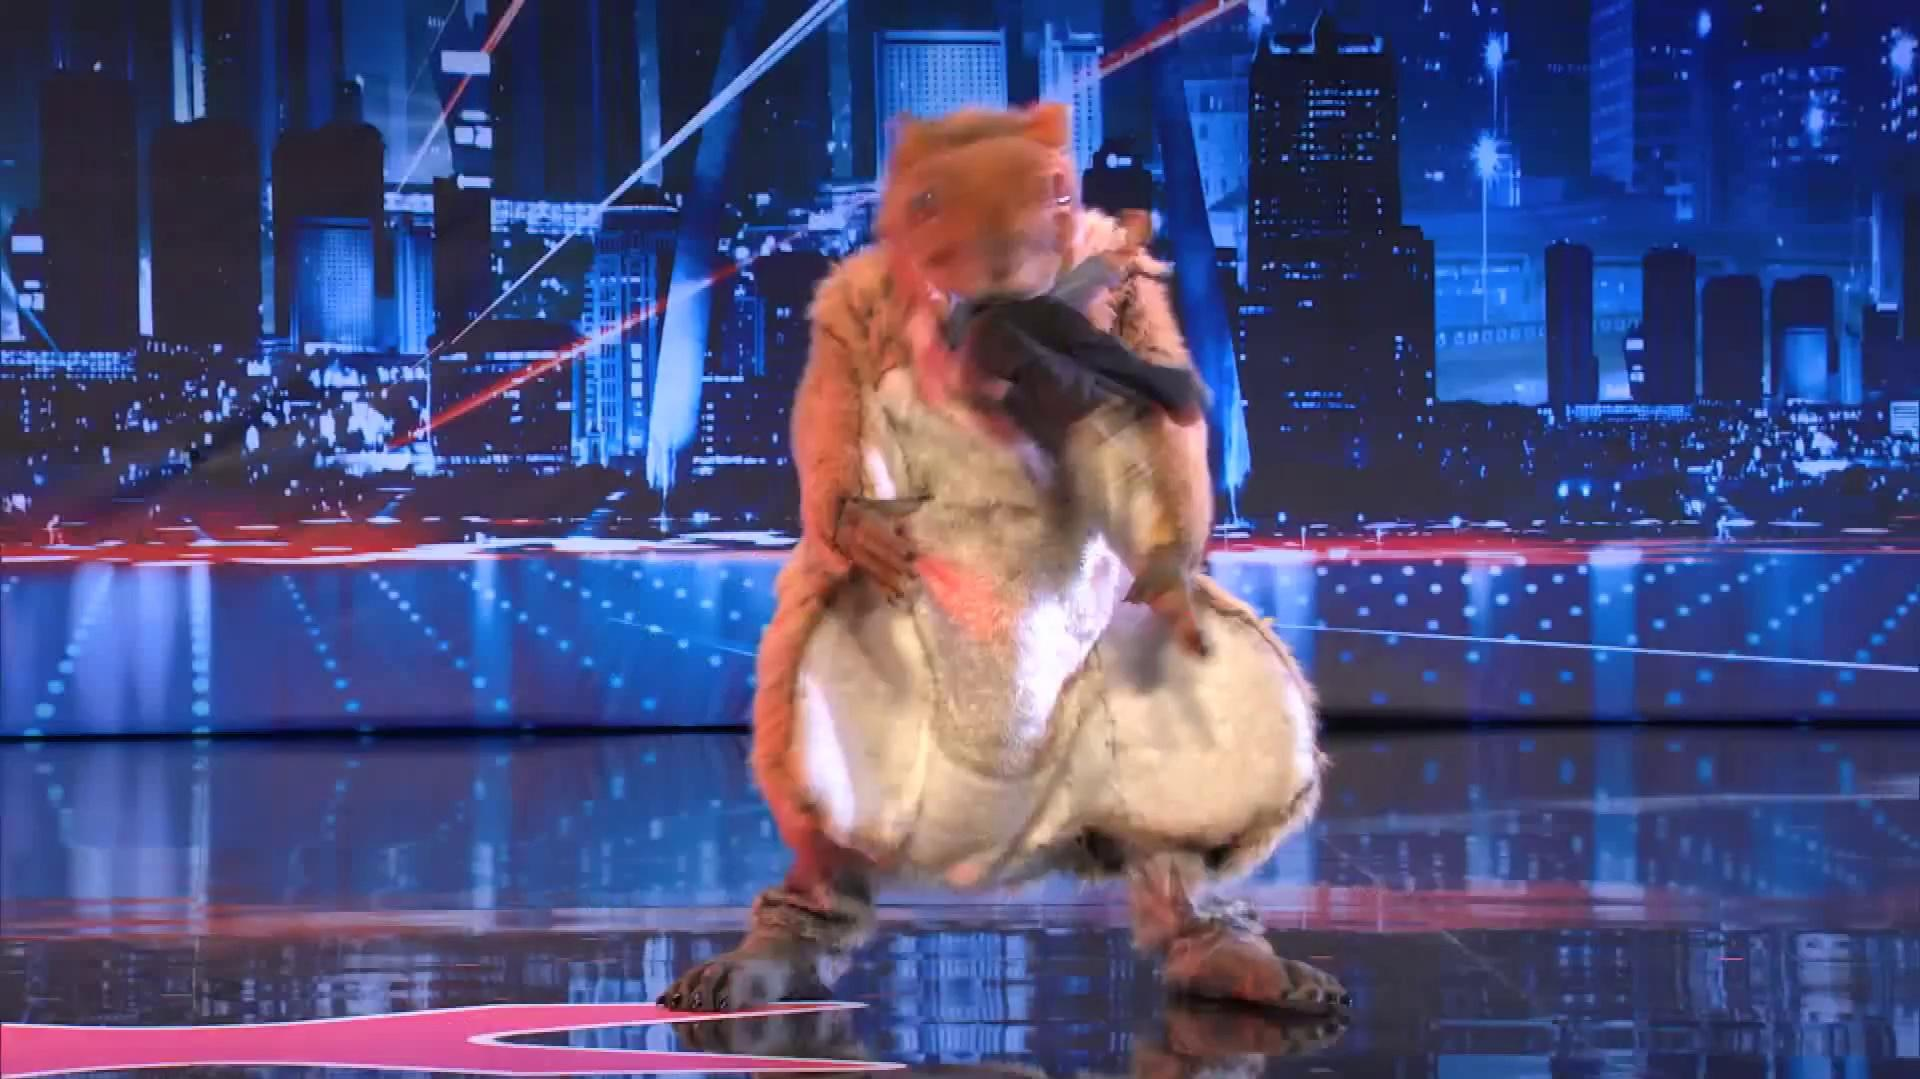 America's_Got_Talent_2013_-_Season_8_-_103_-_Johnny_Jetpack_-_Giant_Squirrel_Swallows_a_Little_Boy